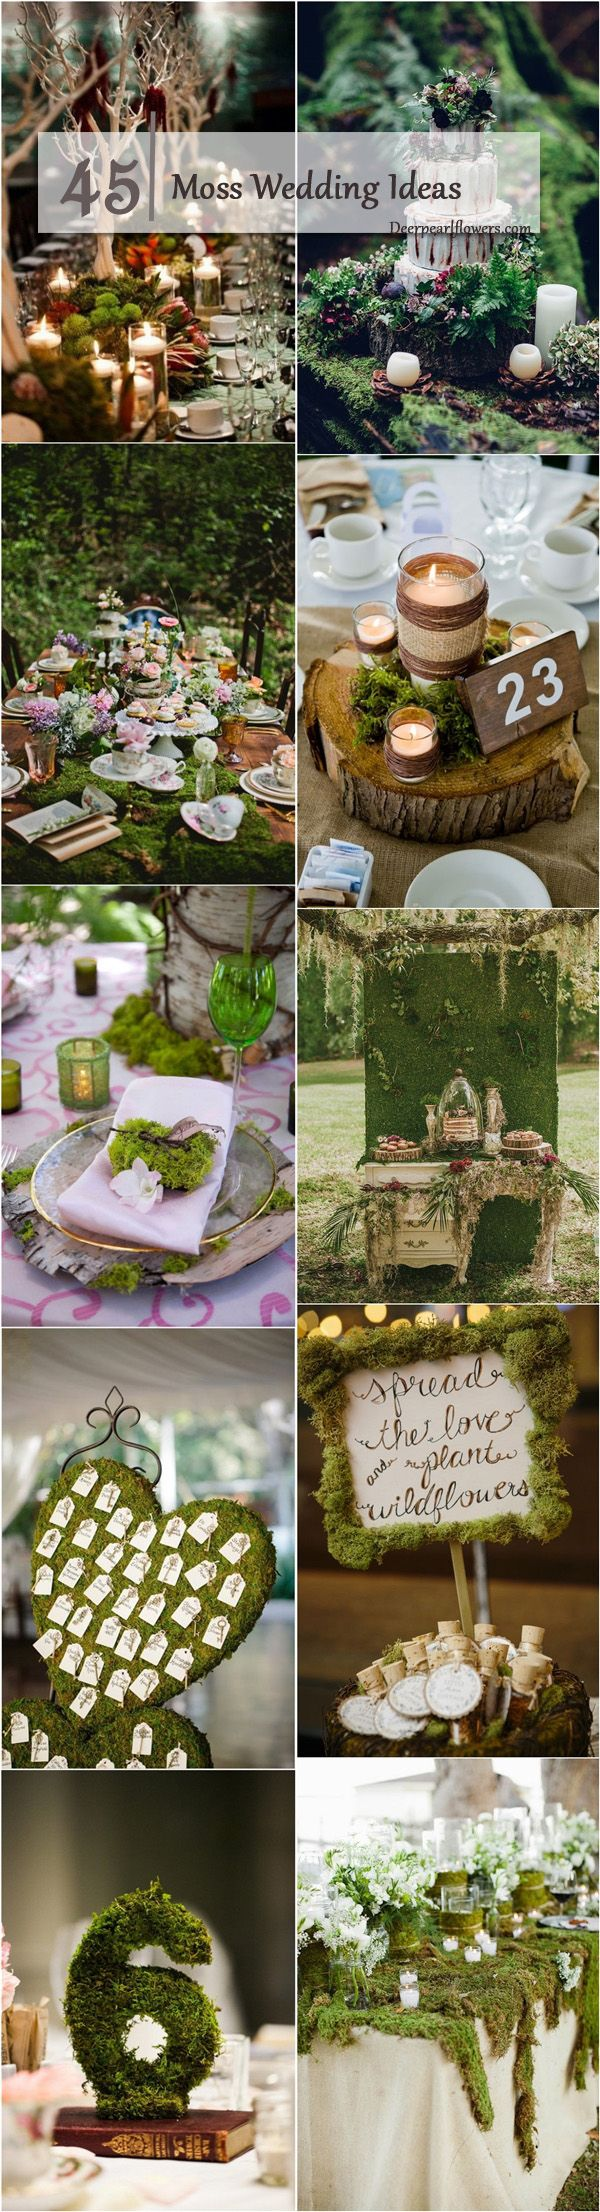 45 Rustic Moss Decor Ideas for A Nature Wedding